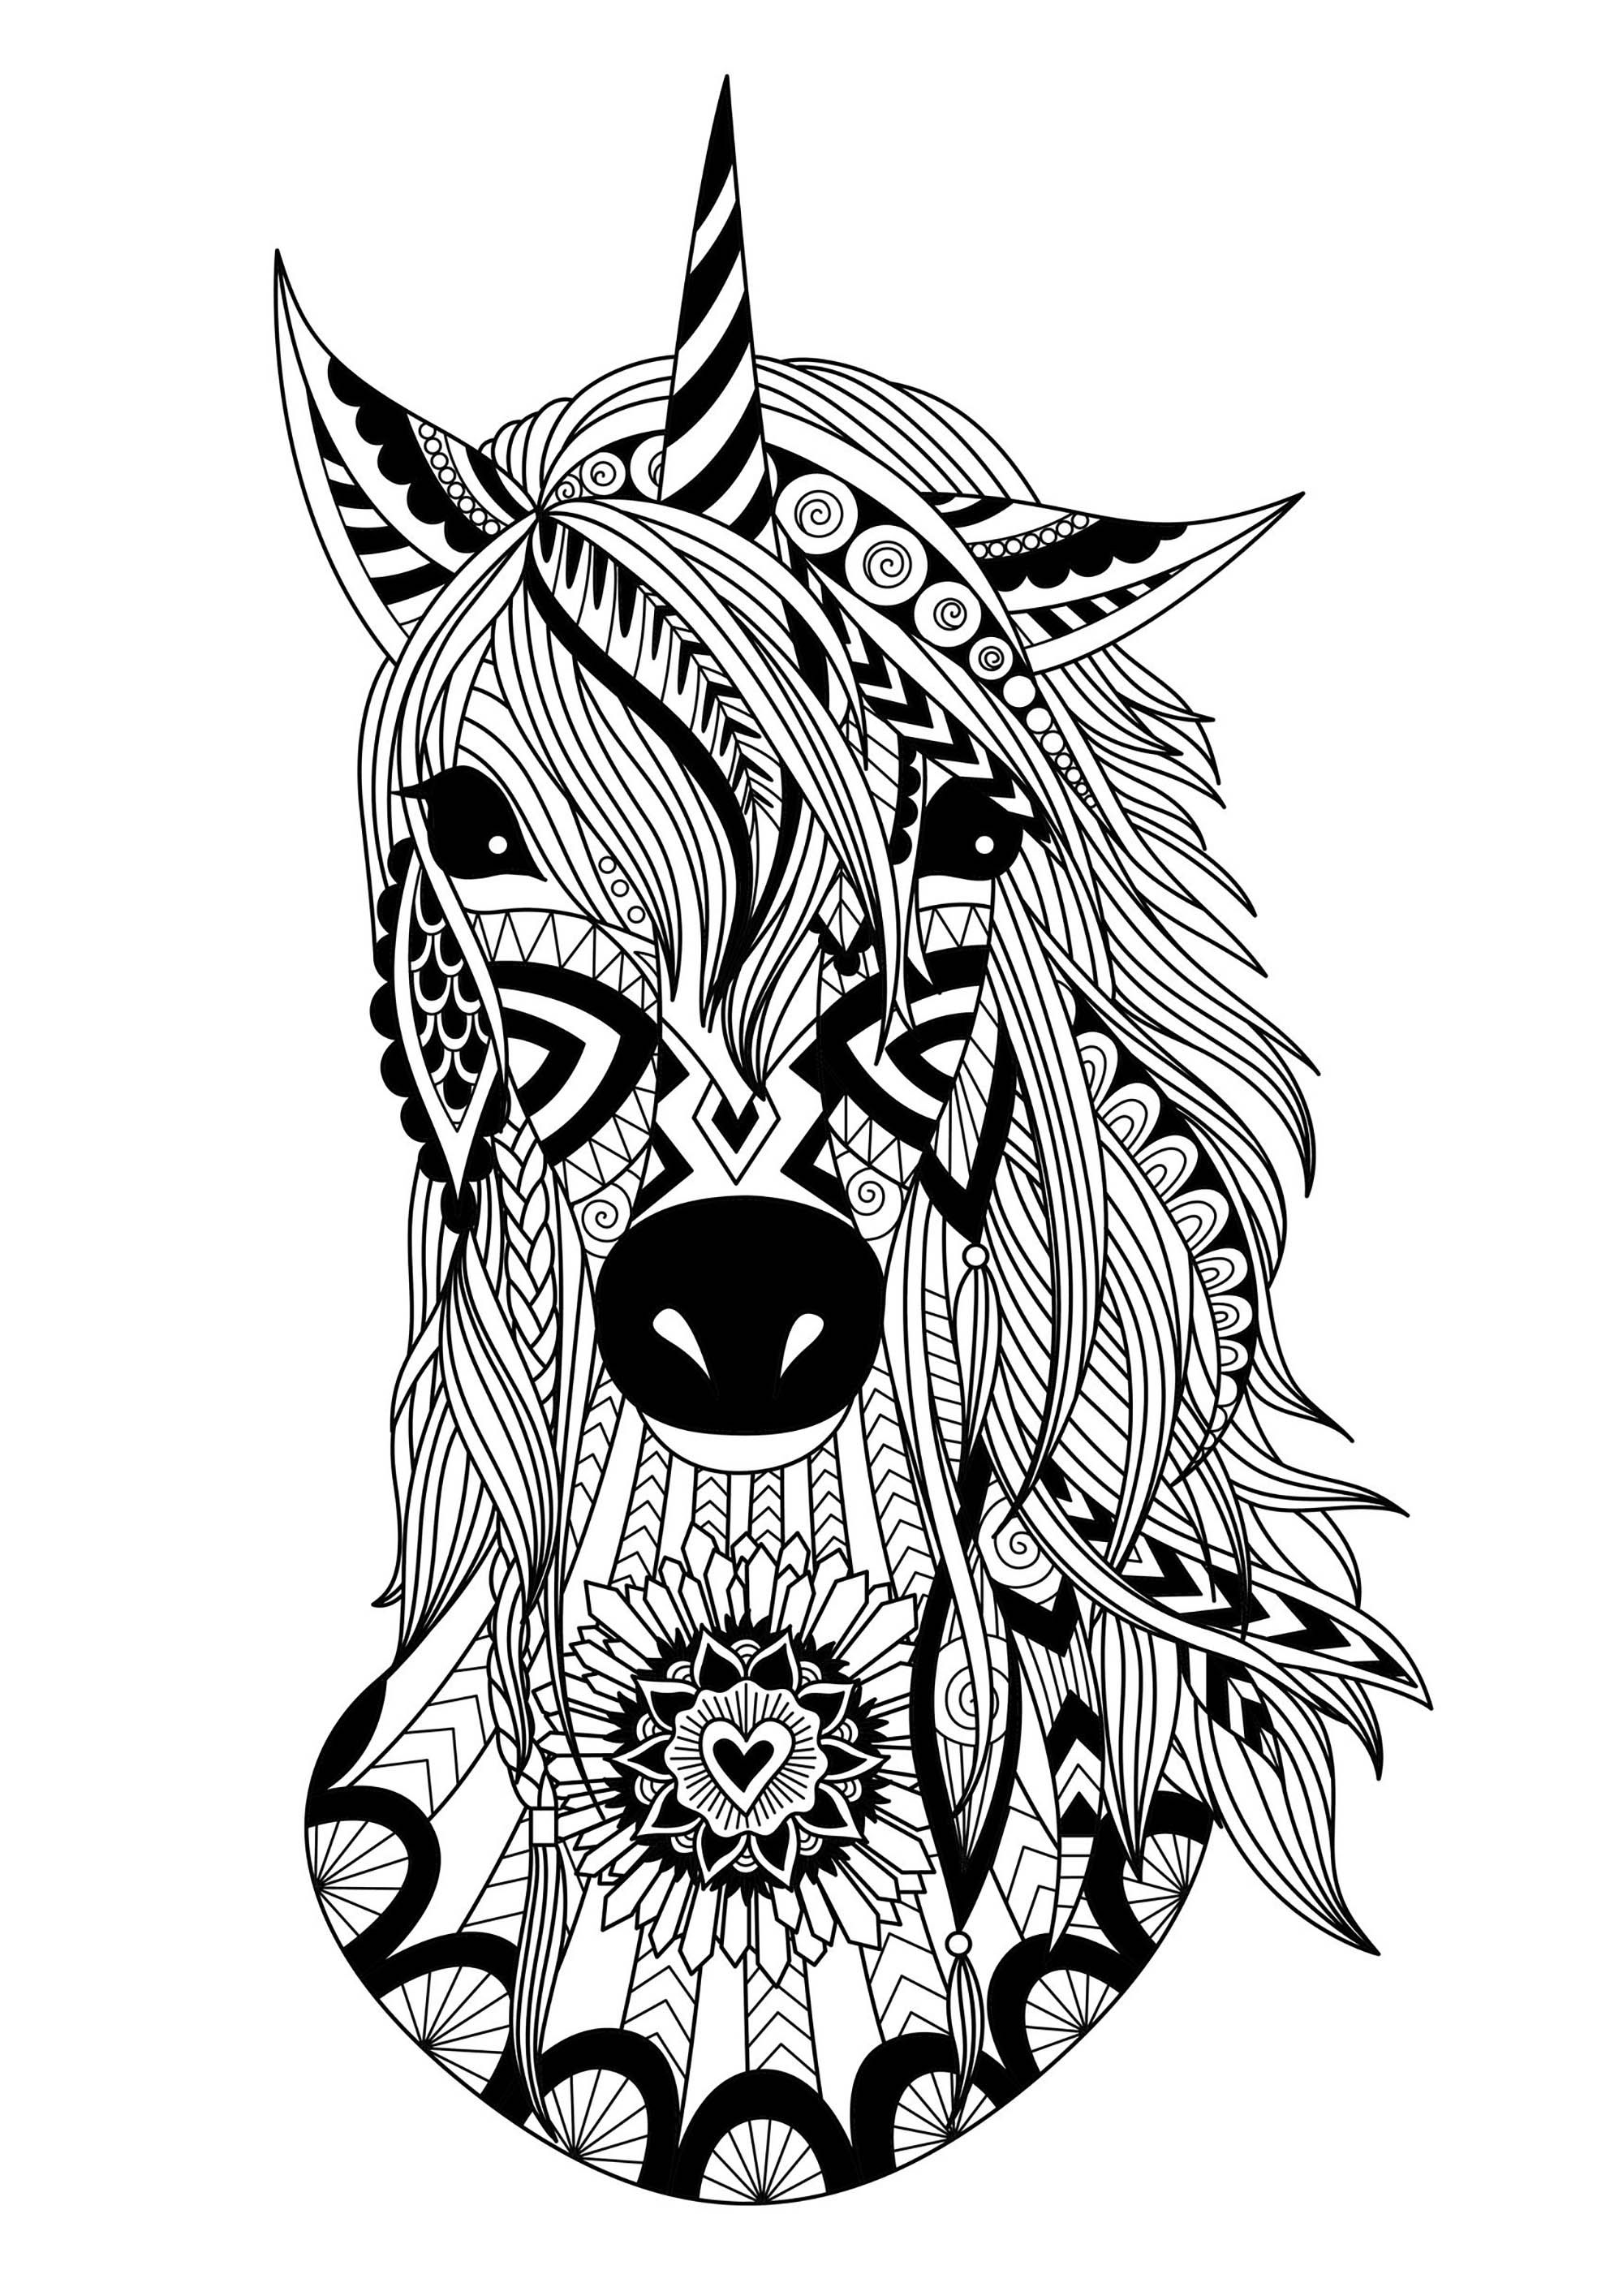 Coloriage Mandala Licorne A Imprimer Gratuitement.Zentangle Unicorn S Head Artist Bimdeedee Coloring